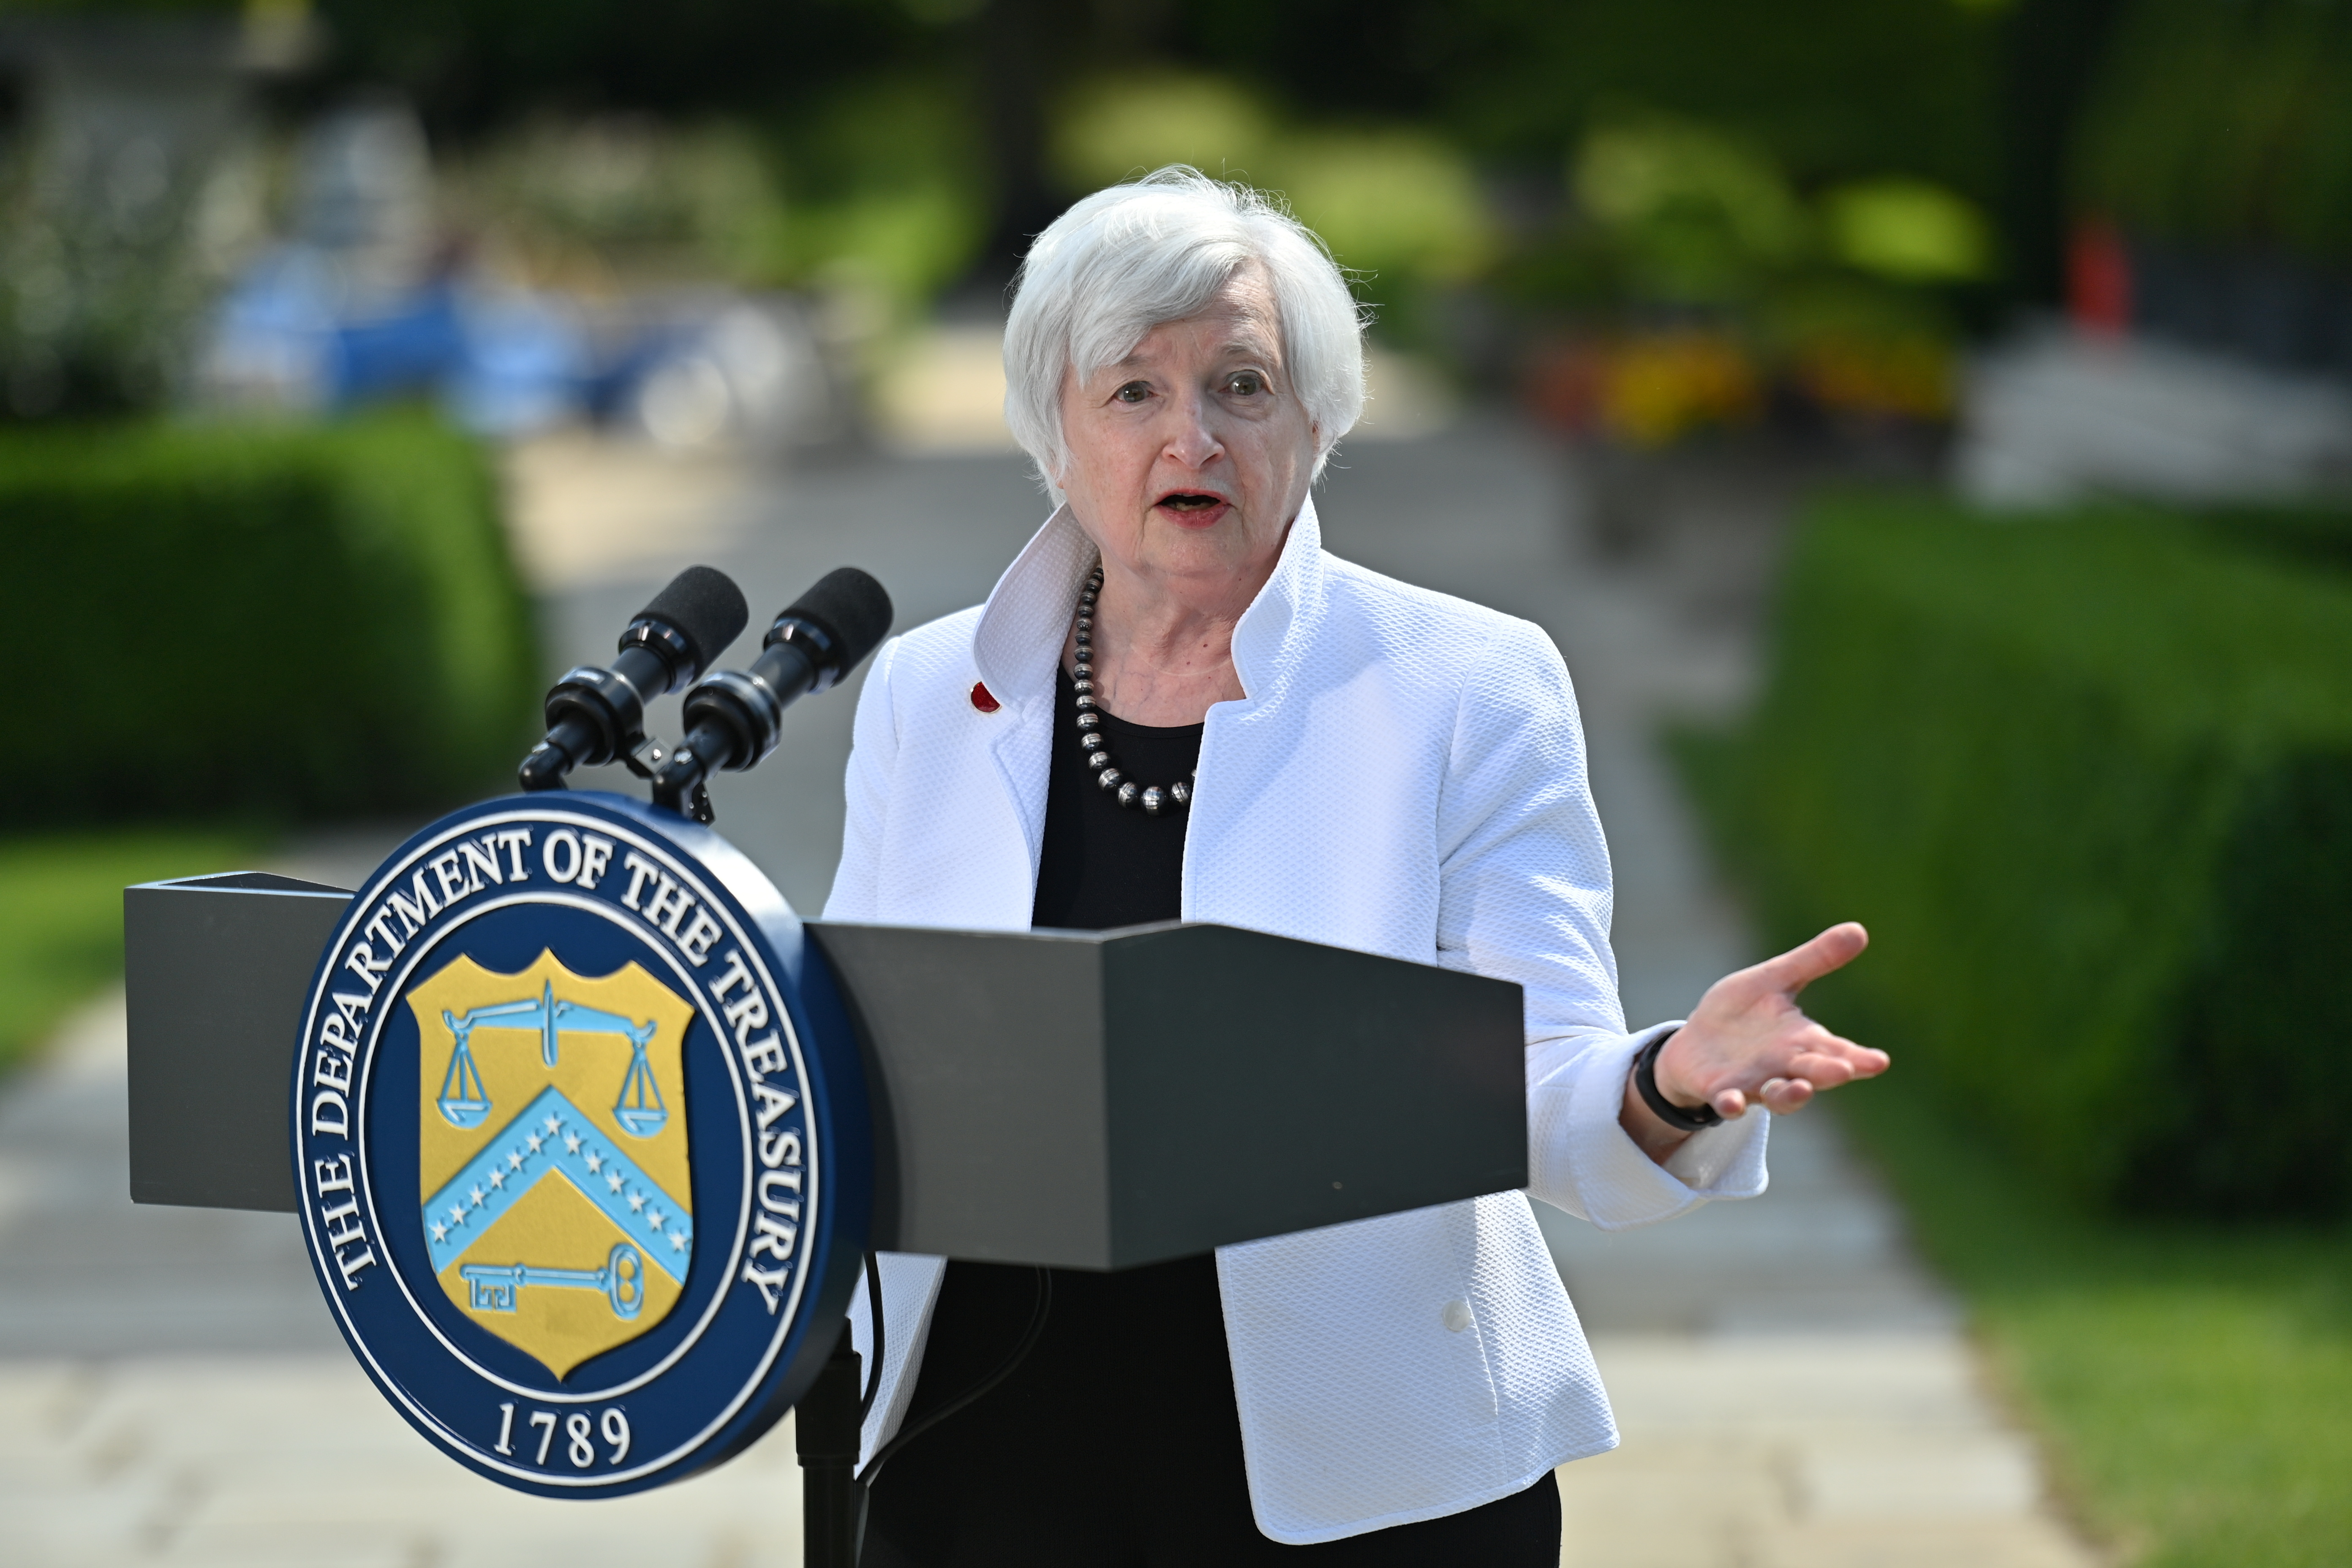 U.S. Treasury Secretary Janet Yellen speaks during a news conference, after attending the G7 finance ministers meeting, at Winfield House in London, Britain June 5, 2021. Justin Tallis/Pool via REUTERS